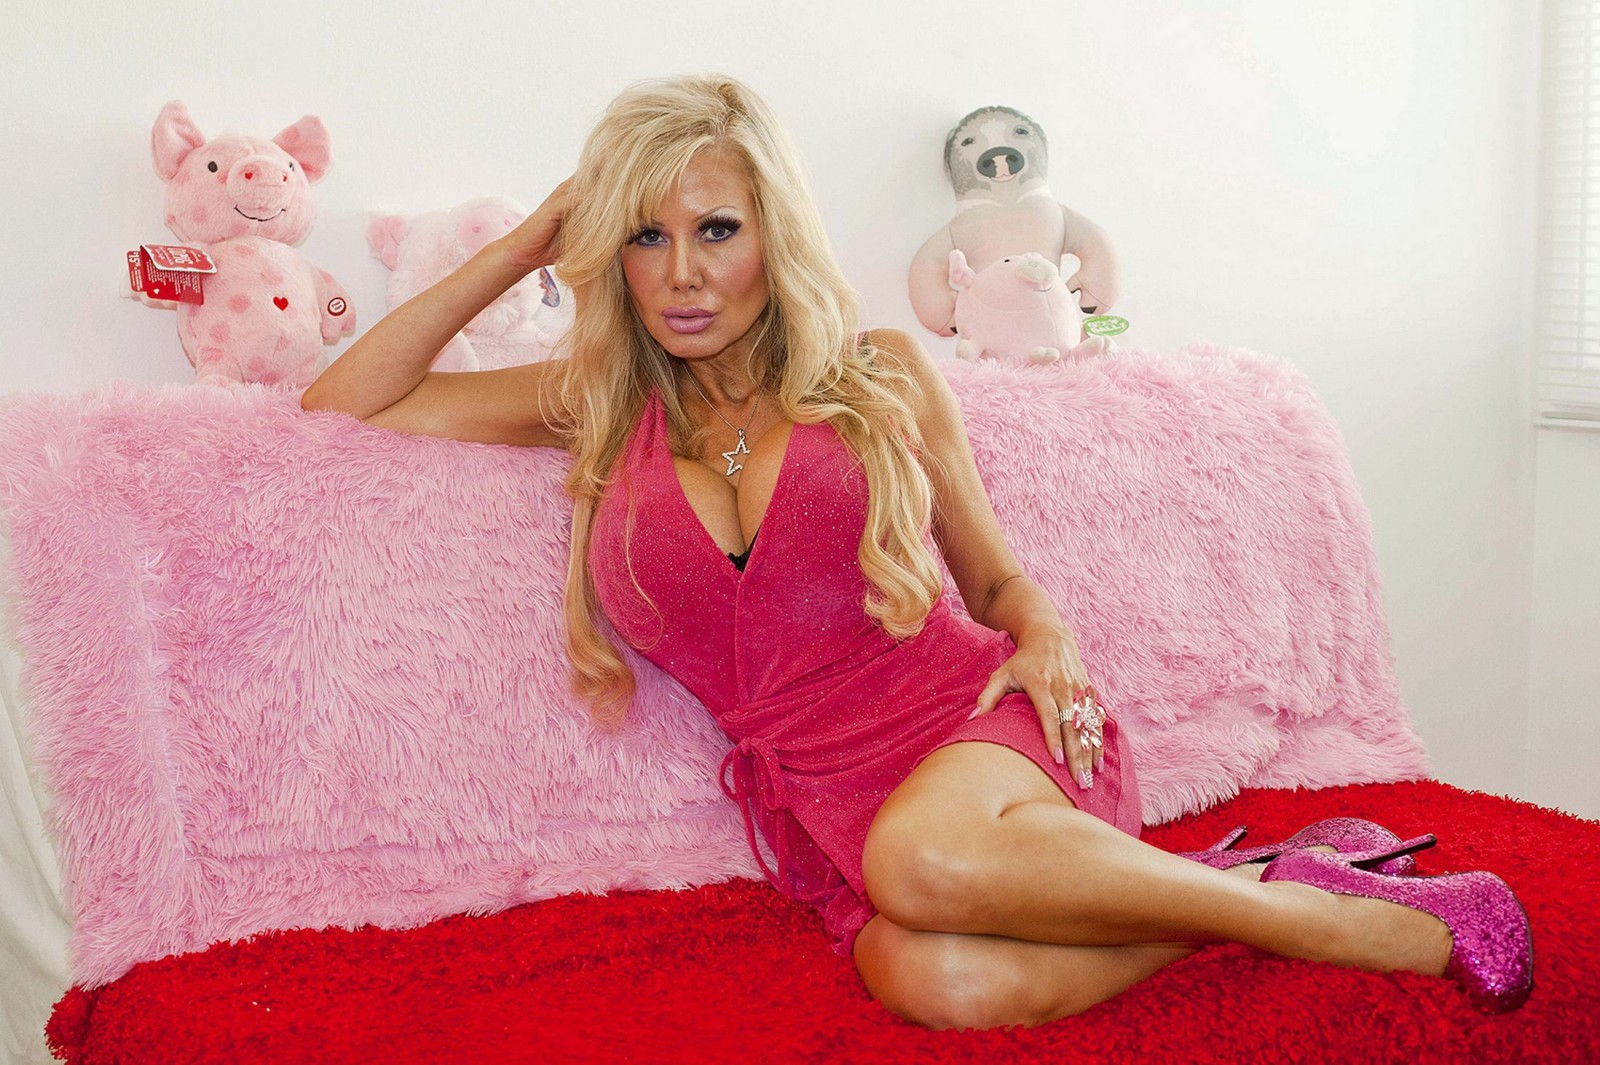 #FirstPerson: Woman Obsessed With Barbie Dolls Undergoes